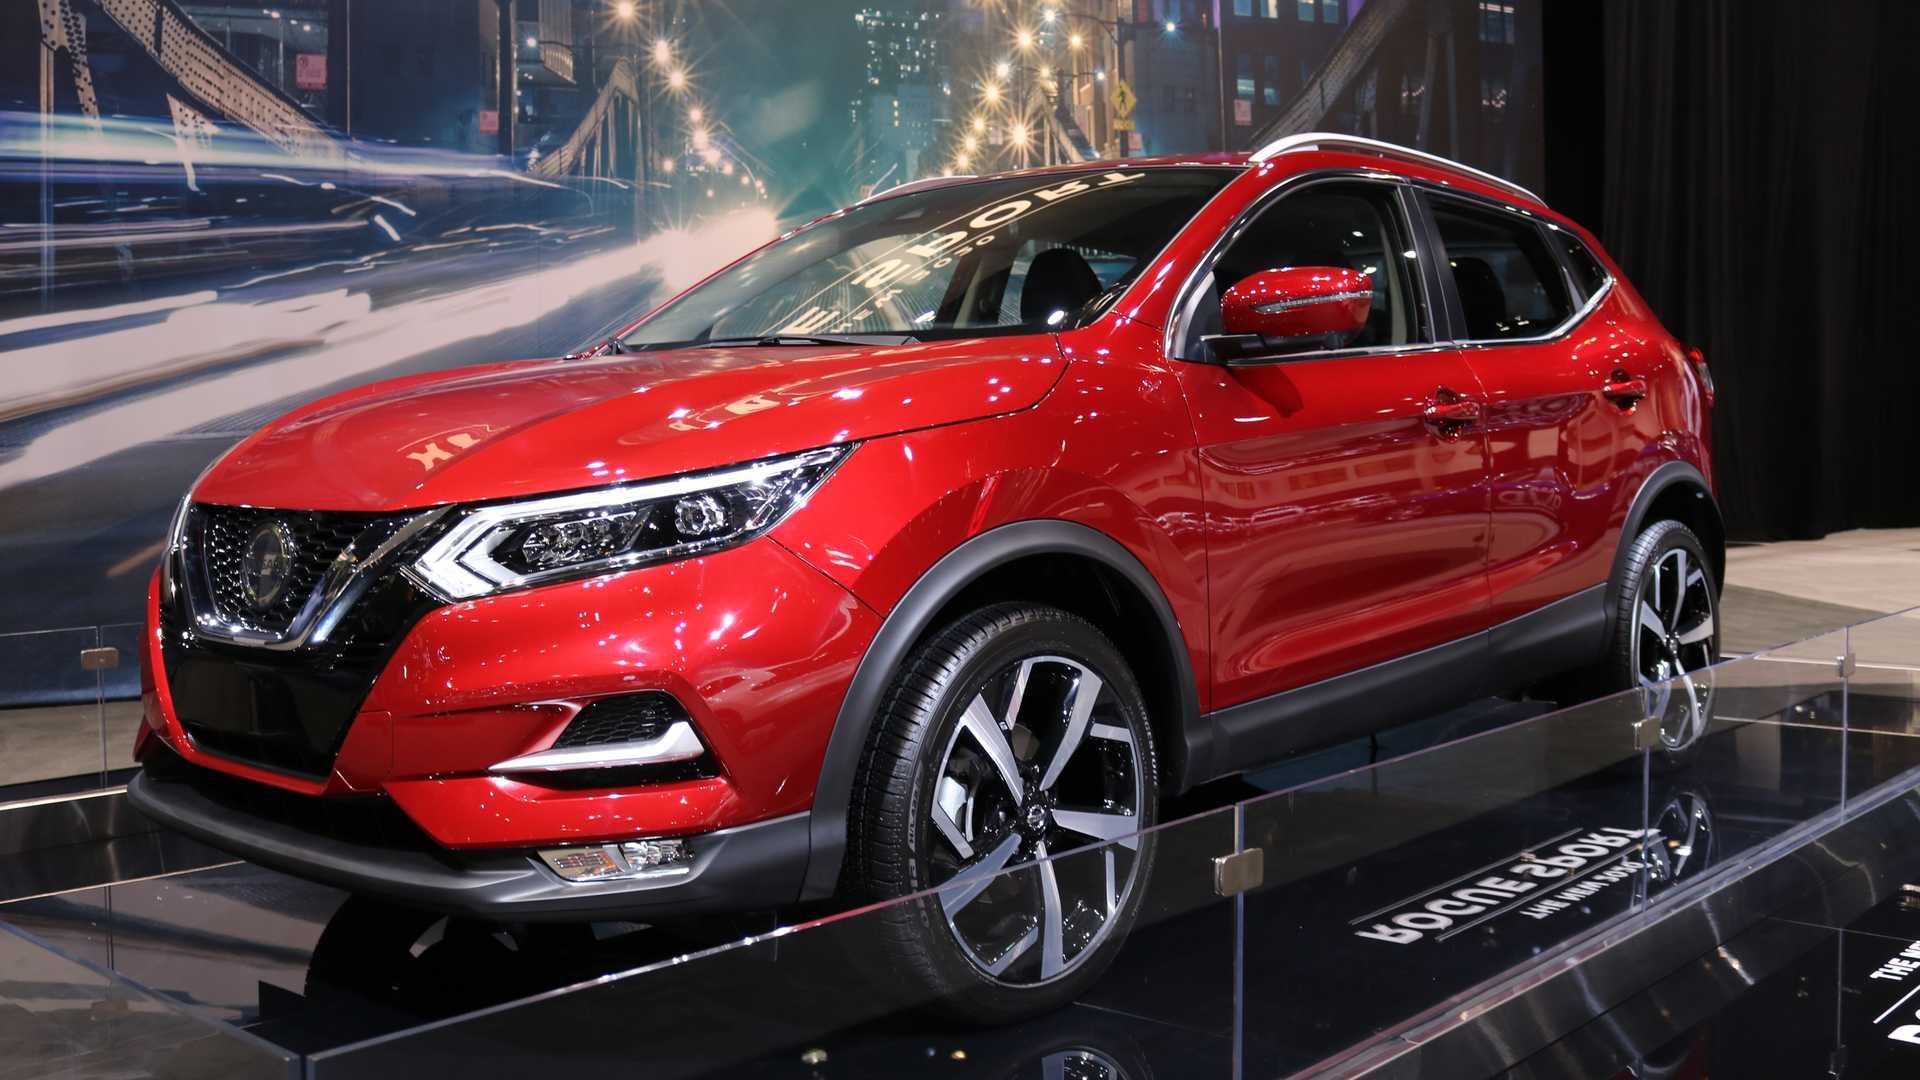 75 The Best Nissan Rogue Redesign 2020 Engine